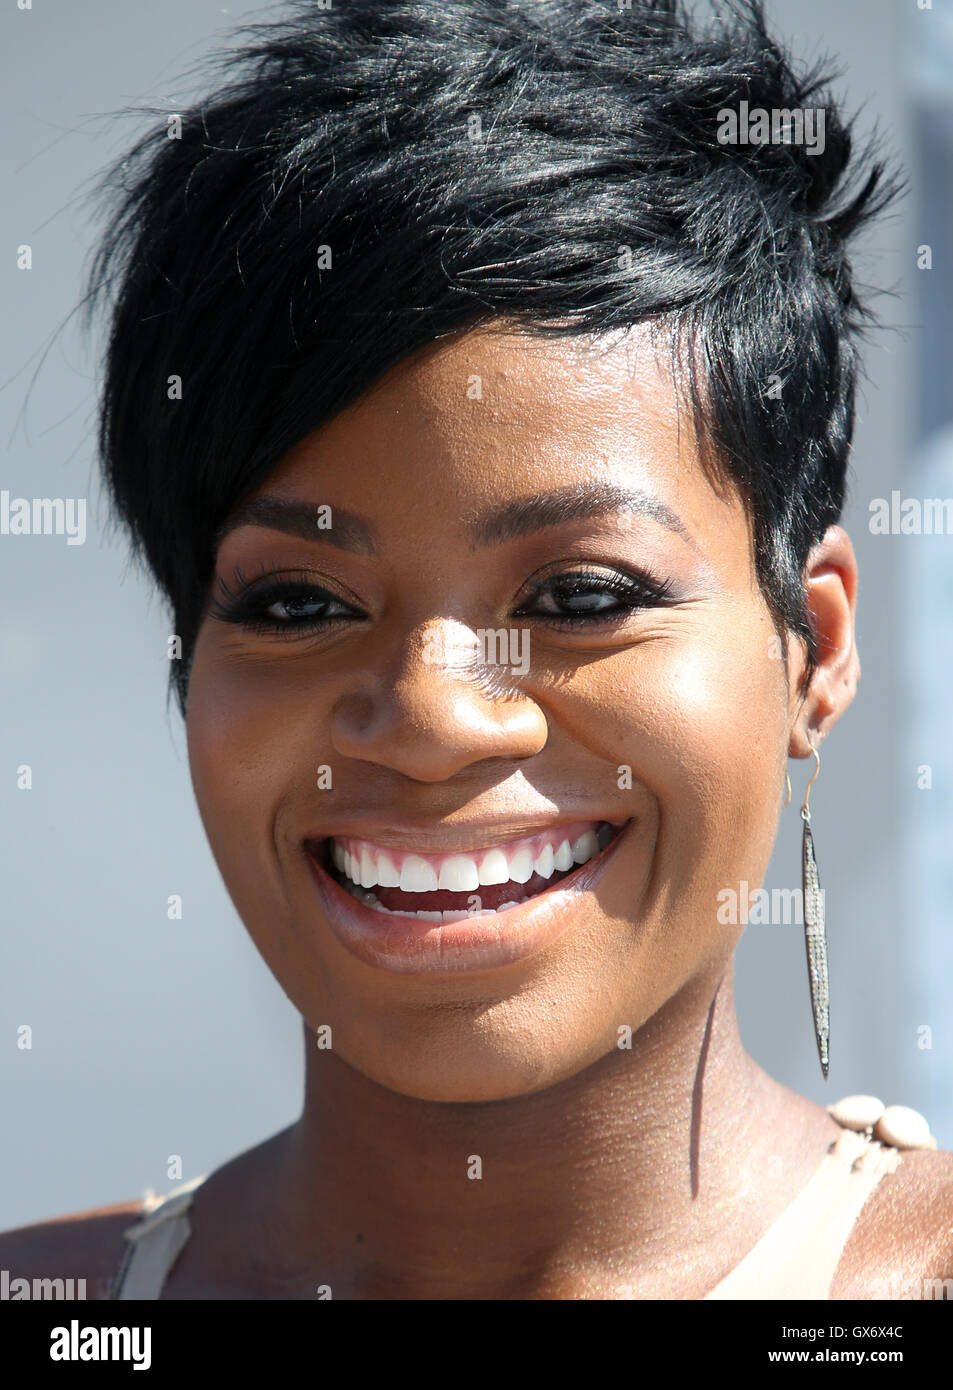 Fantasia Barrino nudes (51 foto and video), Sexy, Bikini, Twitter, butt 2018